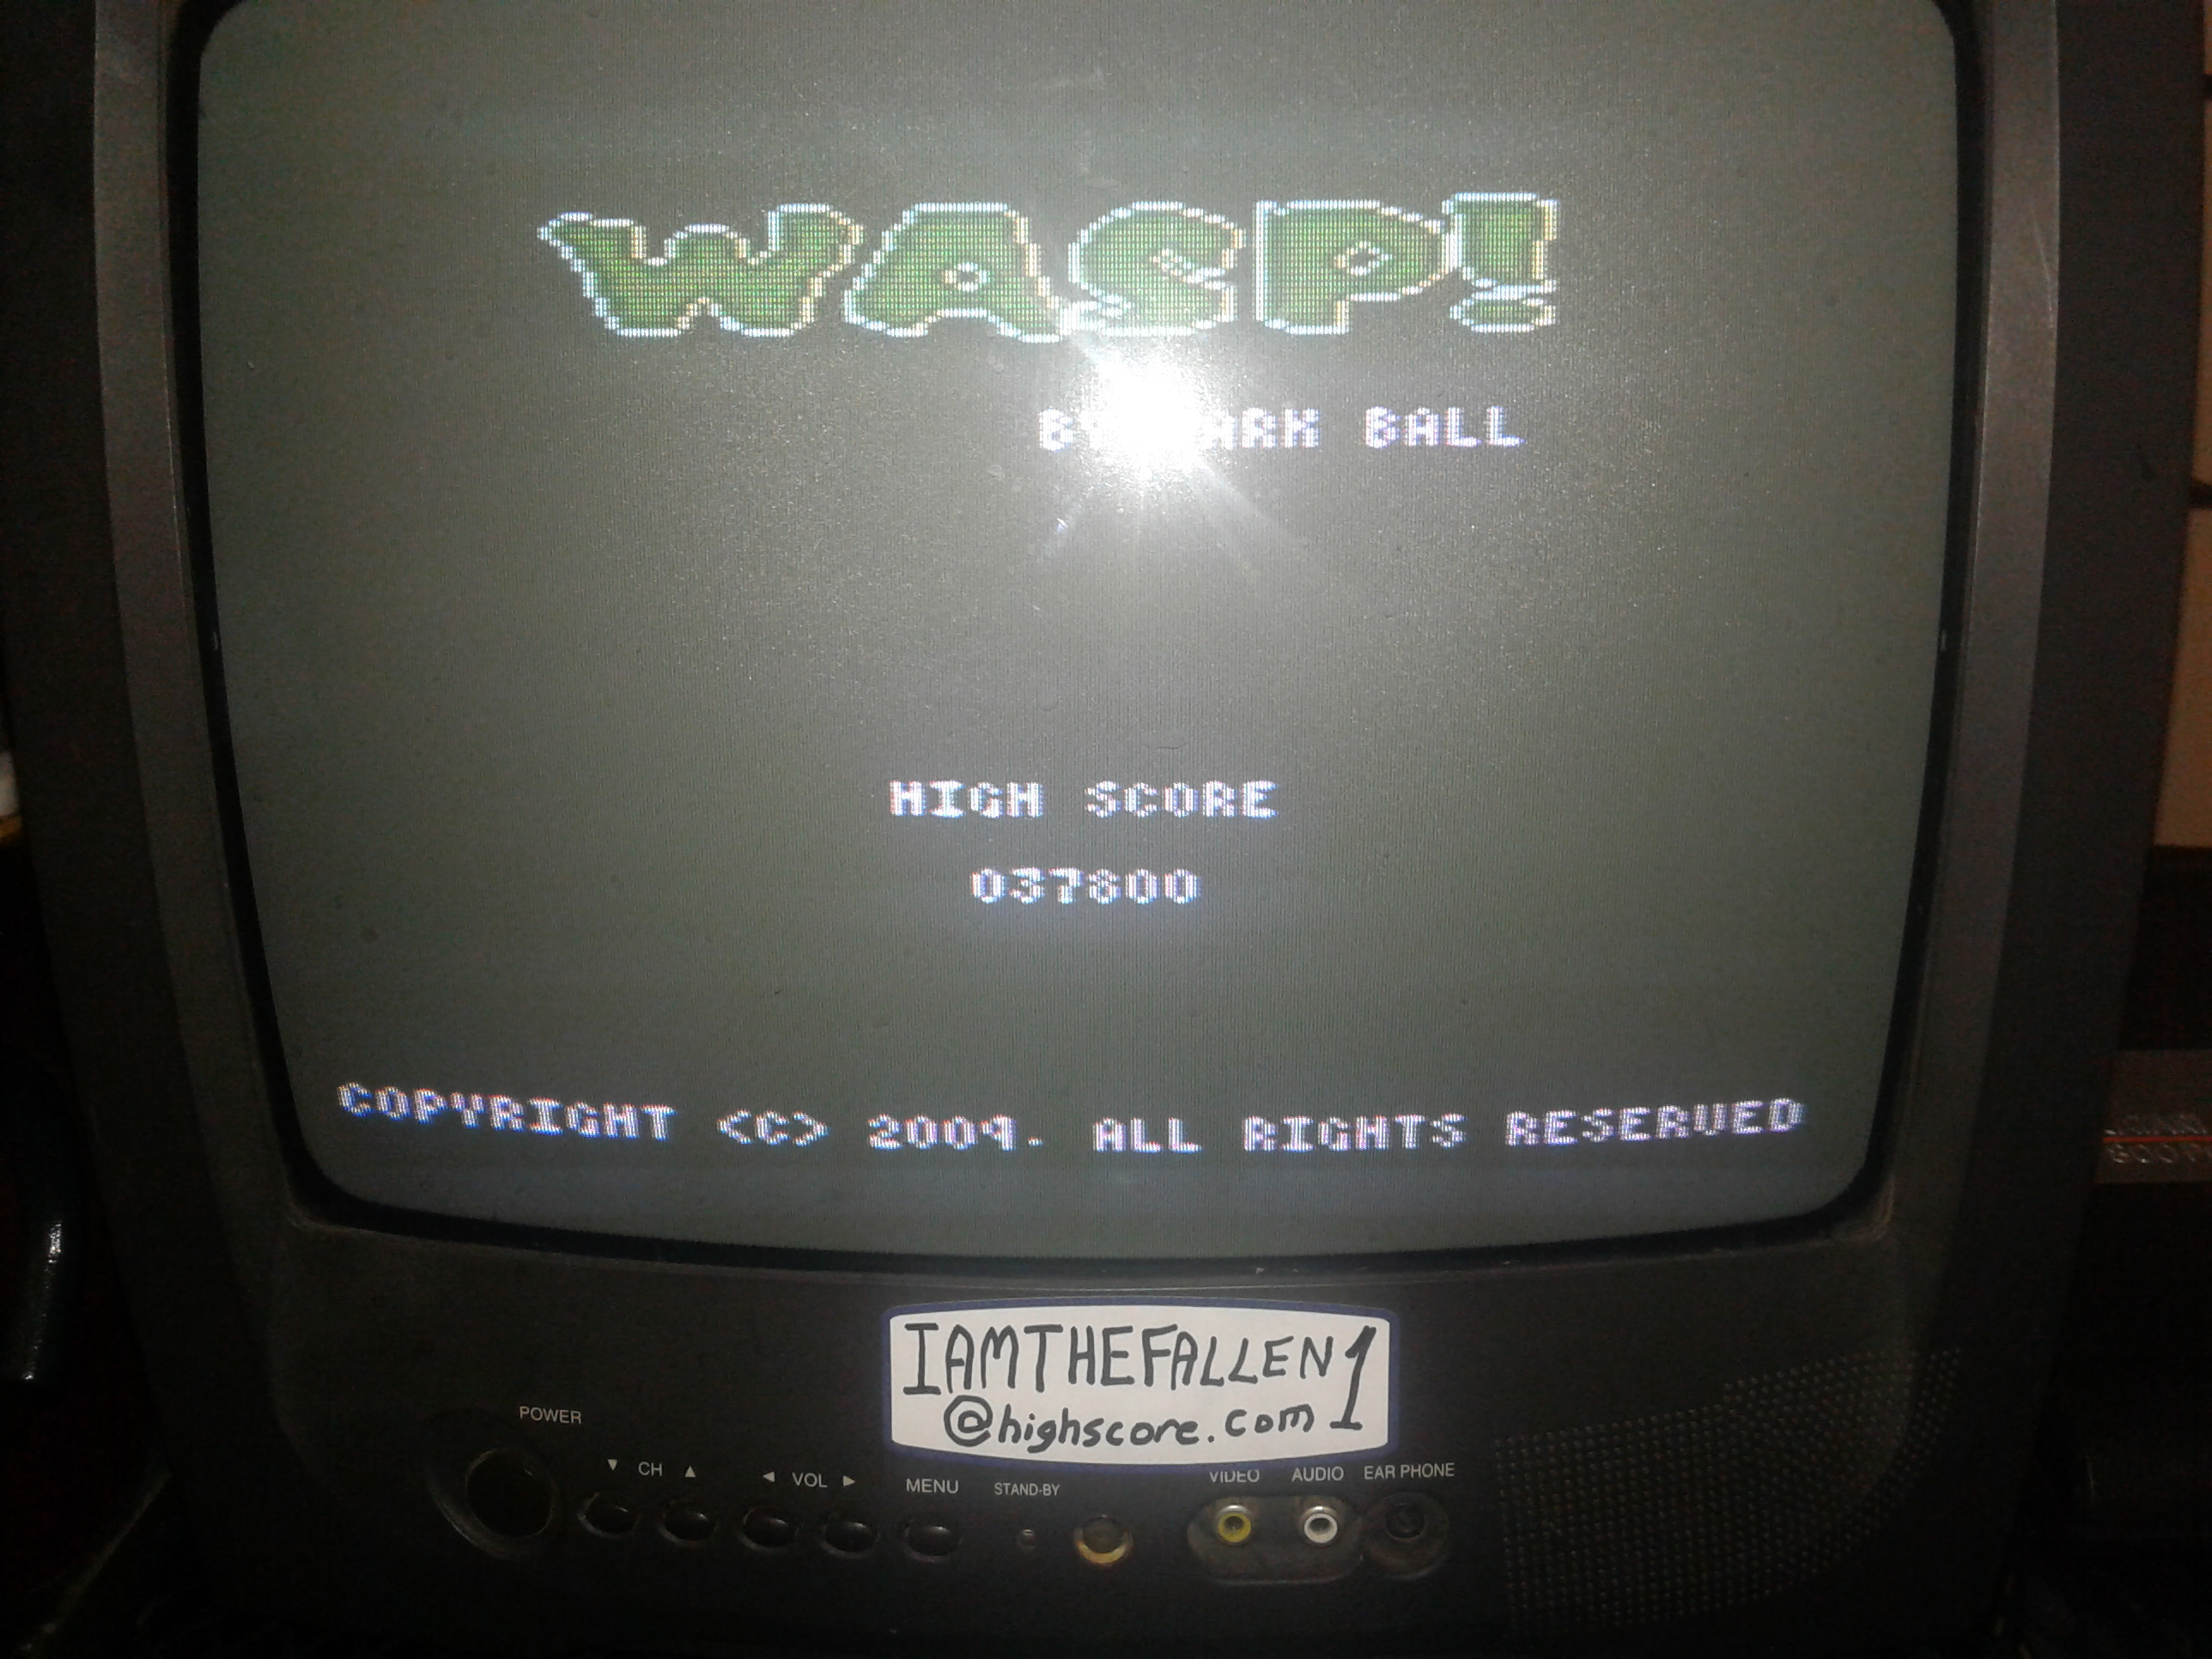 Wasp! 37,800 points